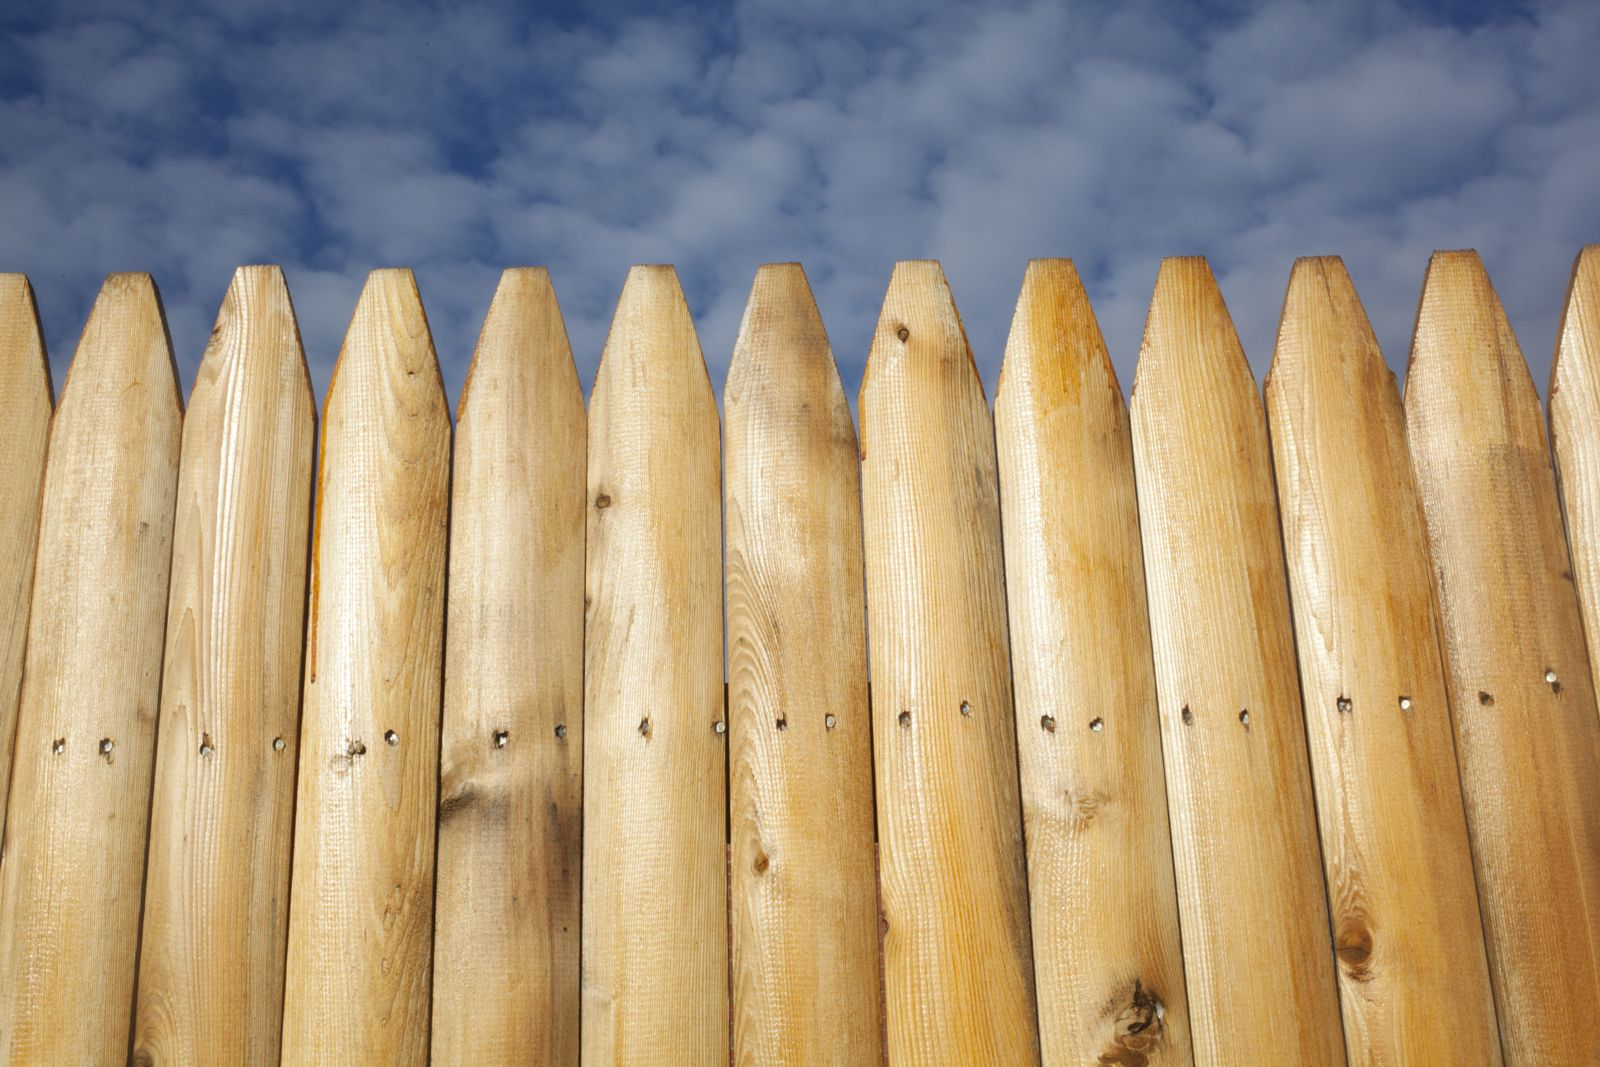 Onlinefence blog onlinefence theres a variety of fencing material alternatives to using wood all of which are widely available in todays market connecticut homeowners need a fence baanklon Choice Image